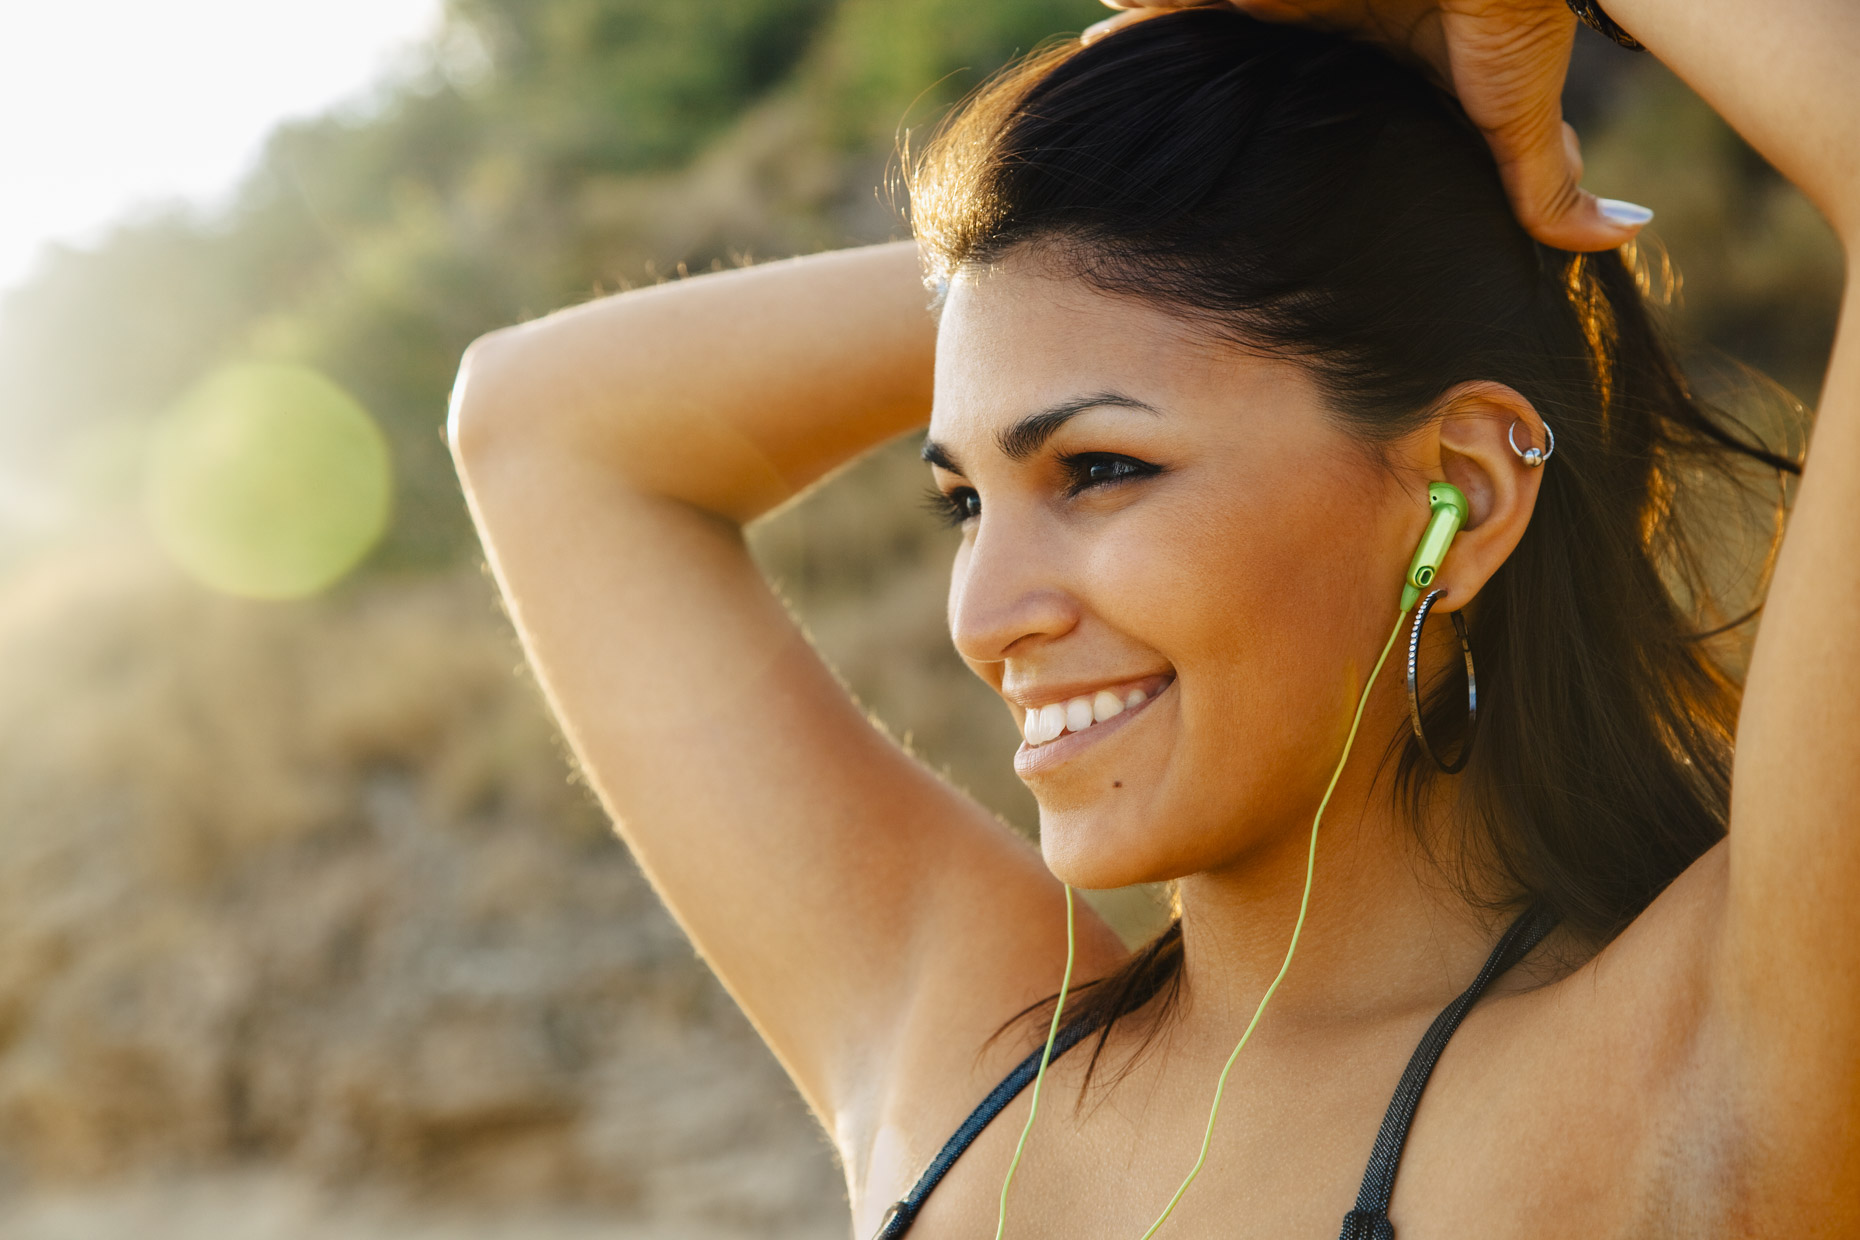 Smiling woman in sunlight listening to green headphones